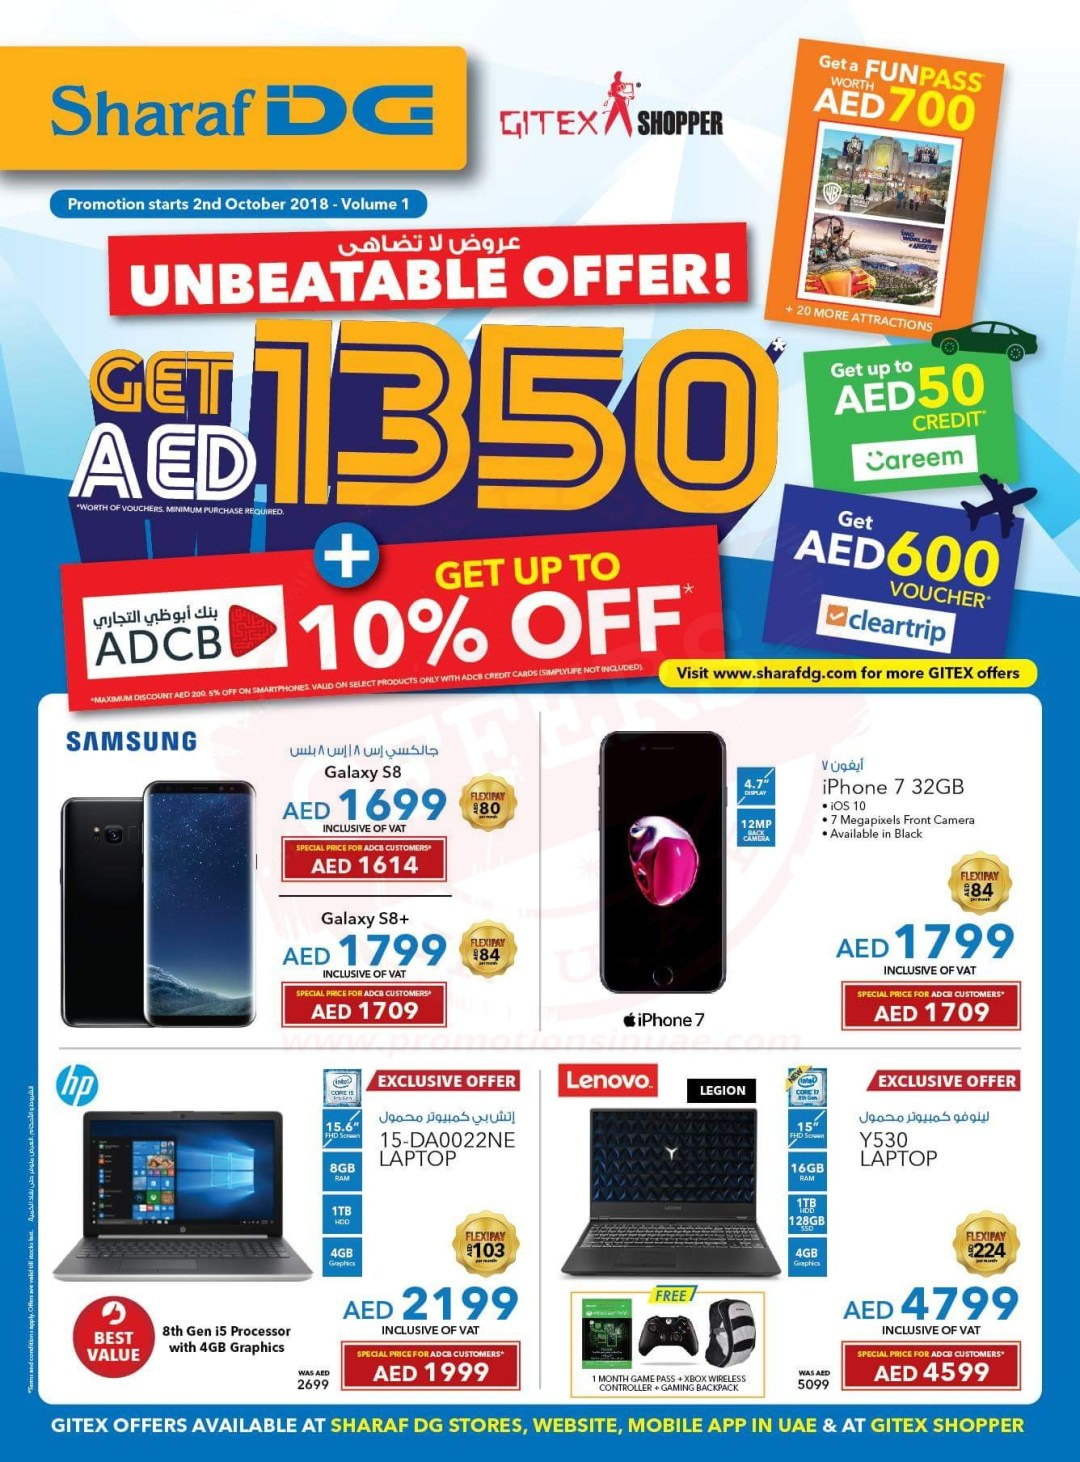 Gitex Shopper is on  5 days of unbeatable deals  Shop at your